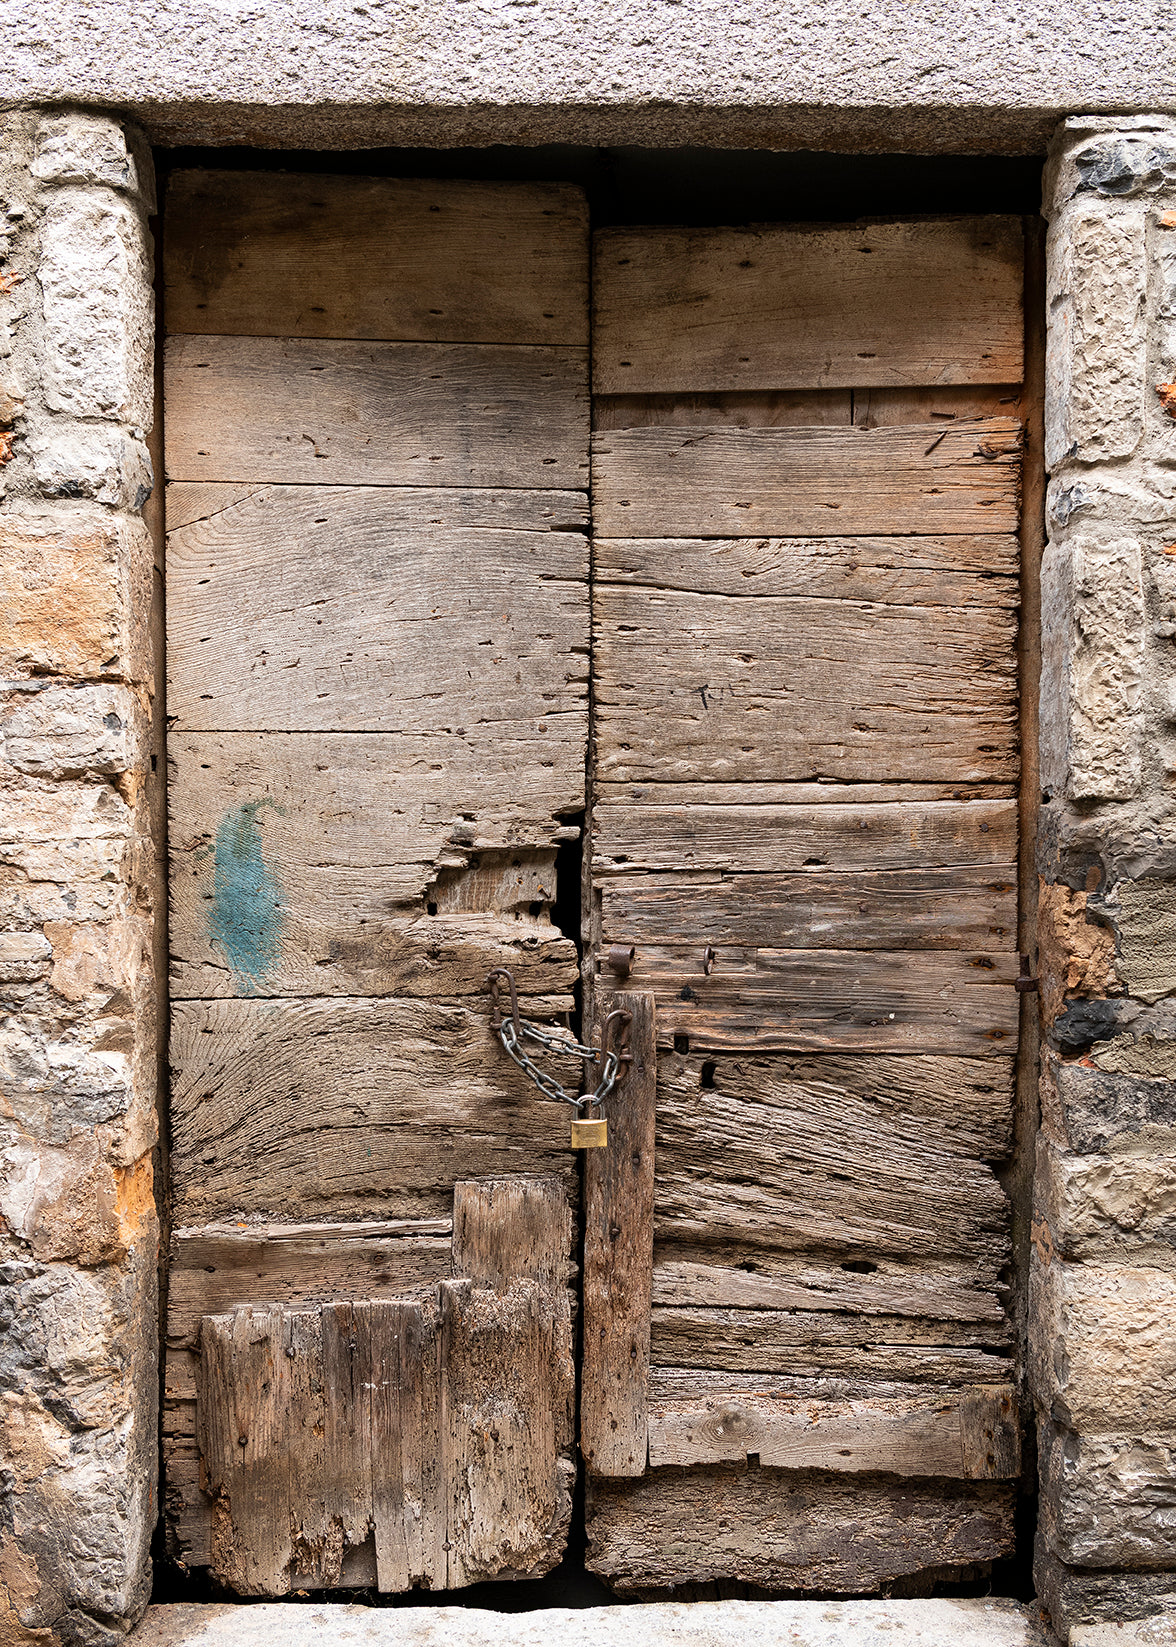 Rustic Door Varenna Lake Como